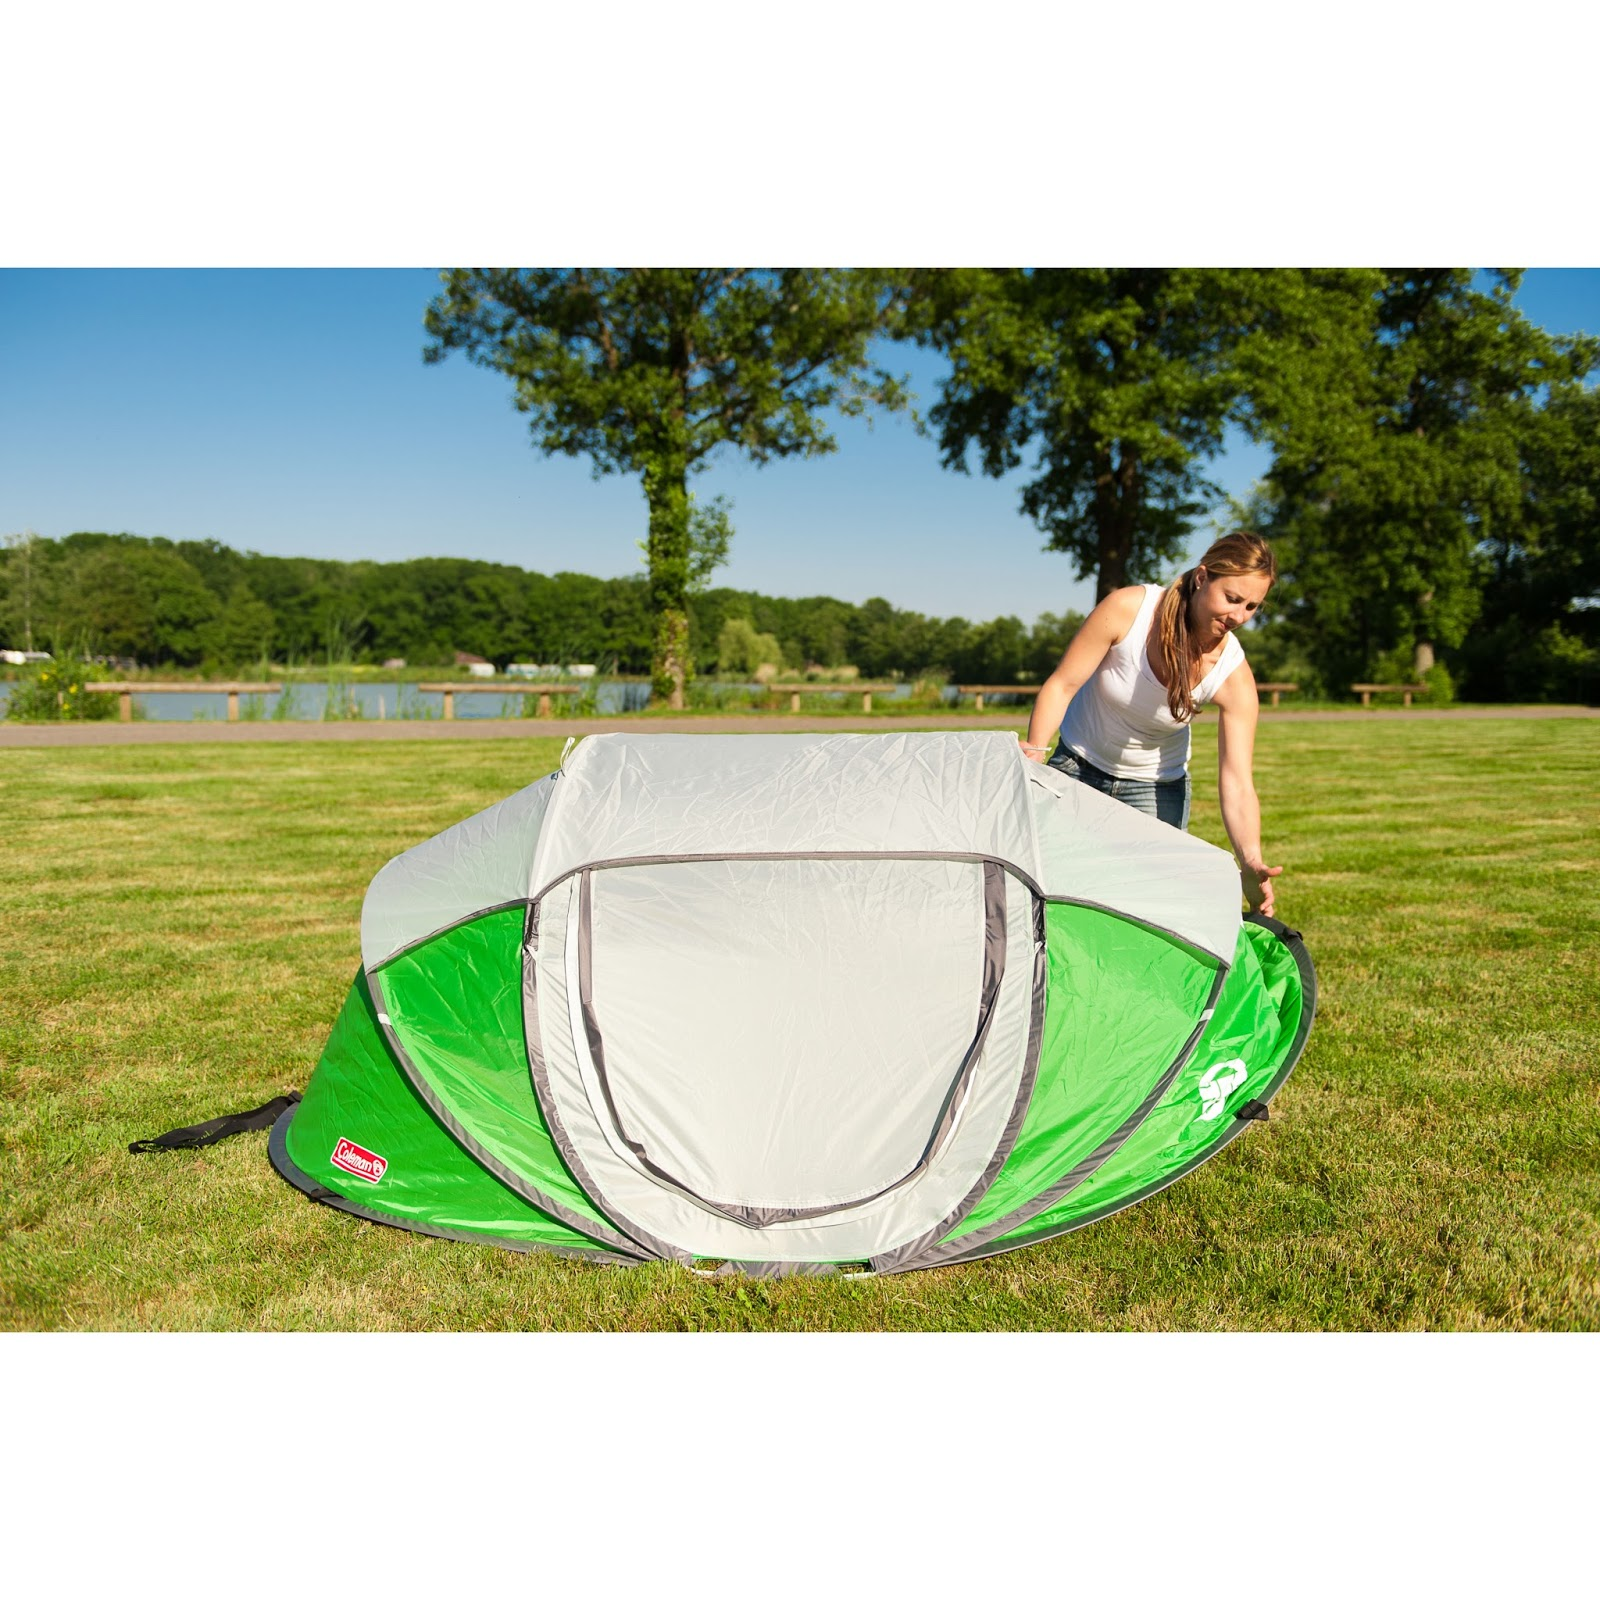 ... Pop Up Tent from #Coleman has just arrived here in Little Paxton  a Fastpitch POP Up Tent in a striking Green u0026 White Colour Combination.  sc 1 st  IBEX C&ing Blog & IBEX Camping Blog: Coleman FastPitch Pop UP Galiano 2 - 2 person ...